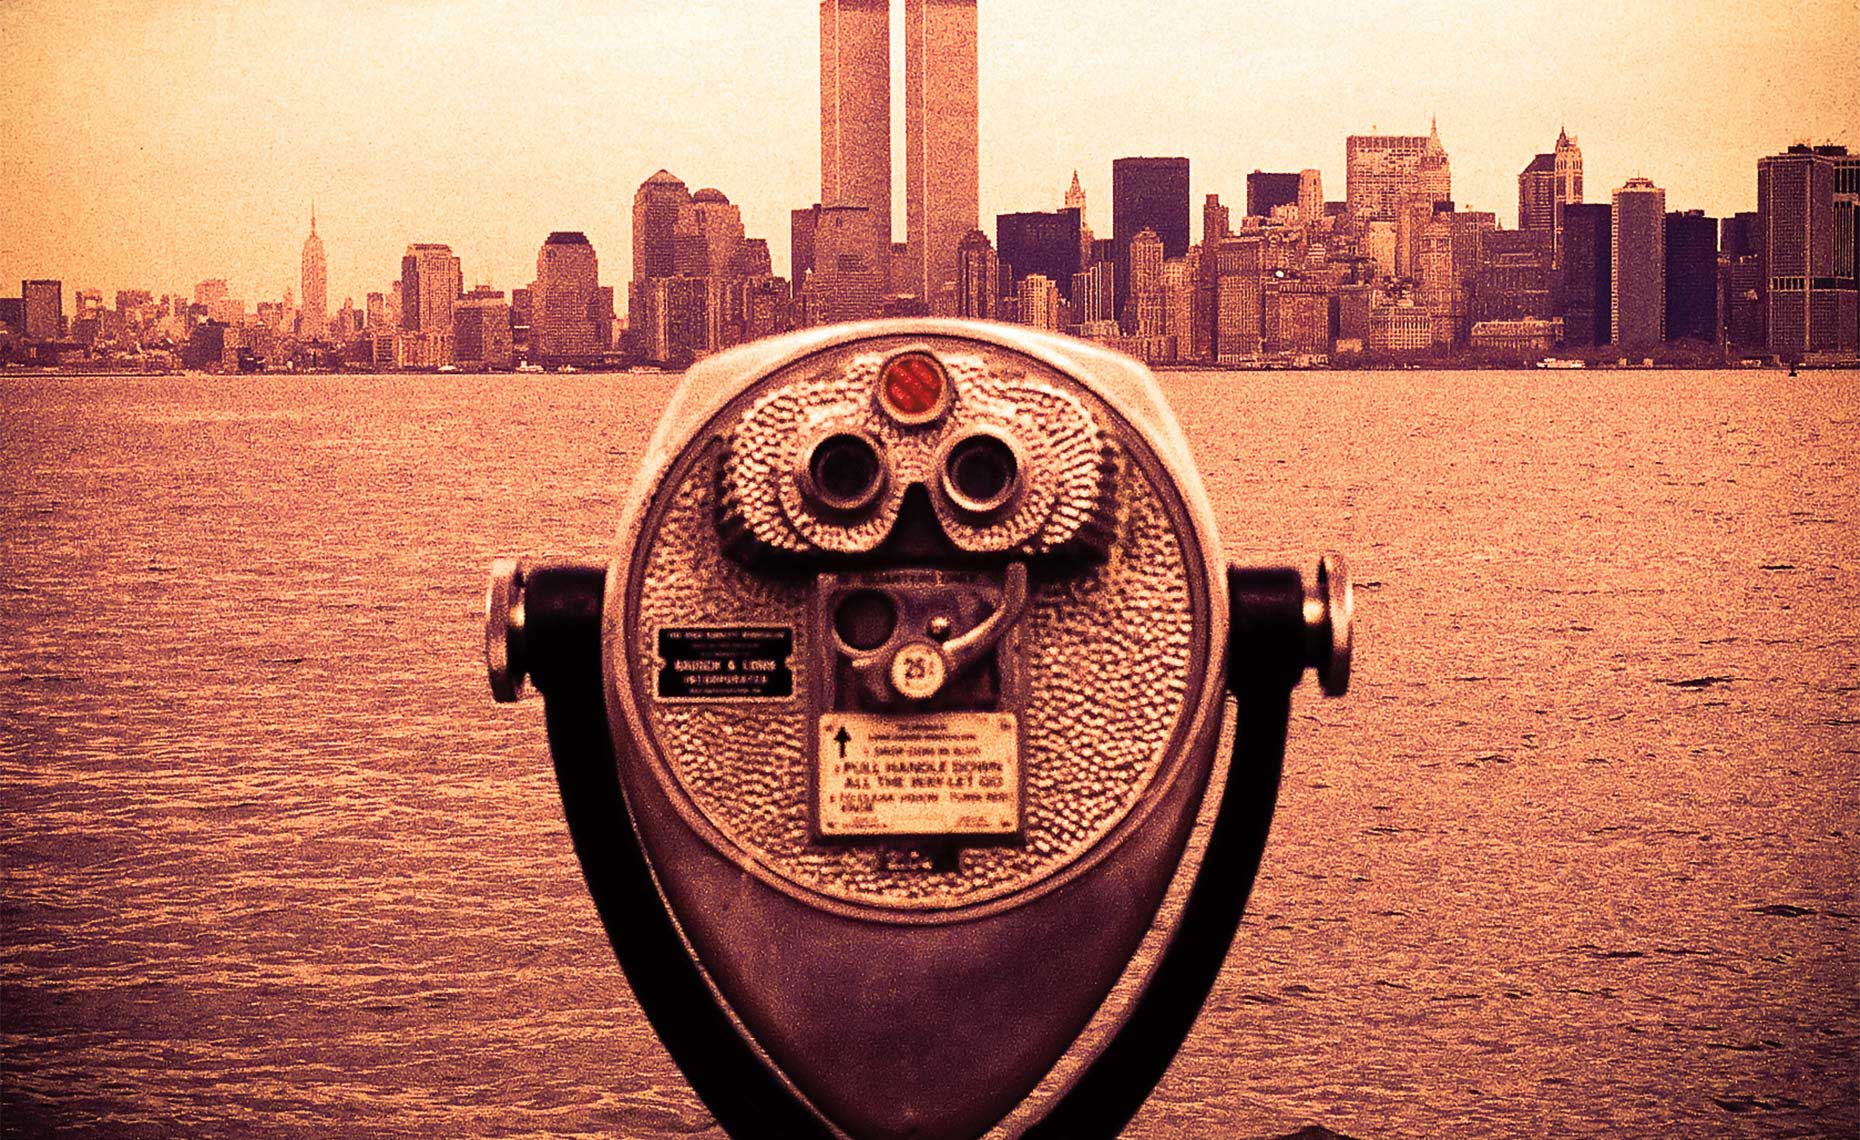 Binoculars Pointing At World Trade Center, New York City